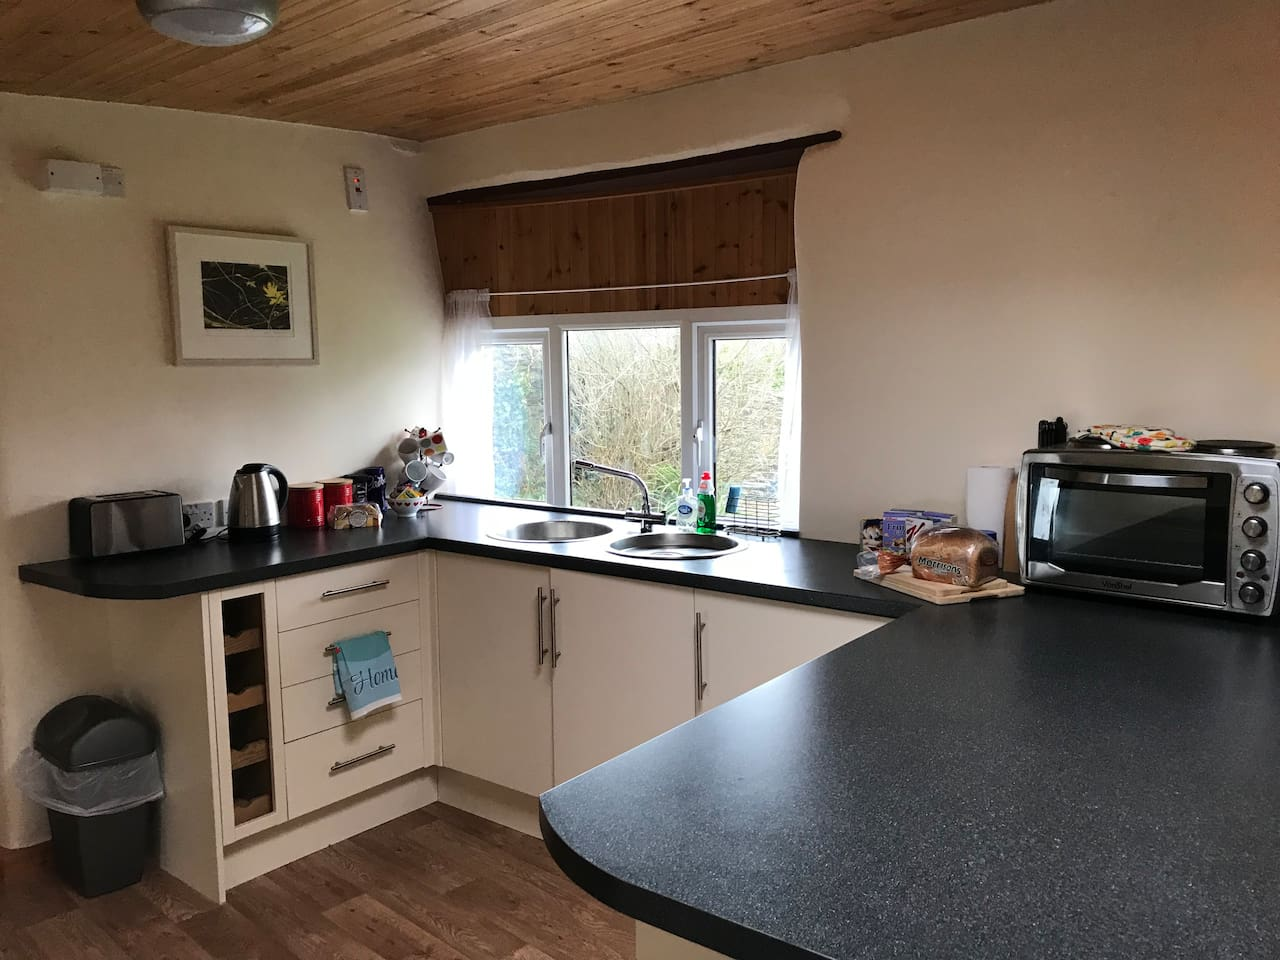 The kitchen area with windows looking out to the garden. It has a fridge and small worktop cooker with 2 hobs.